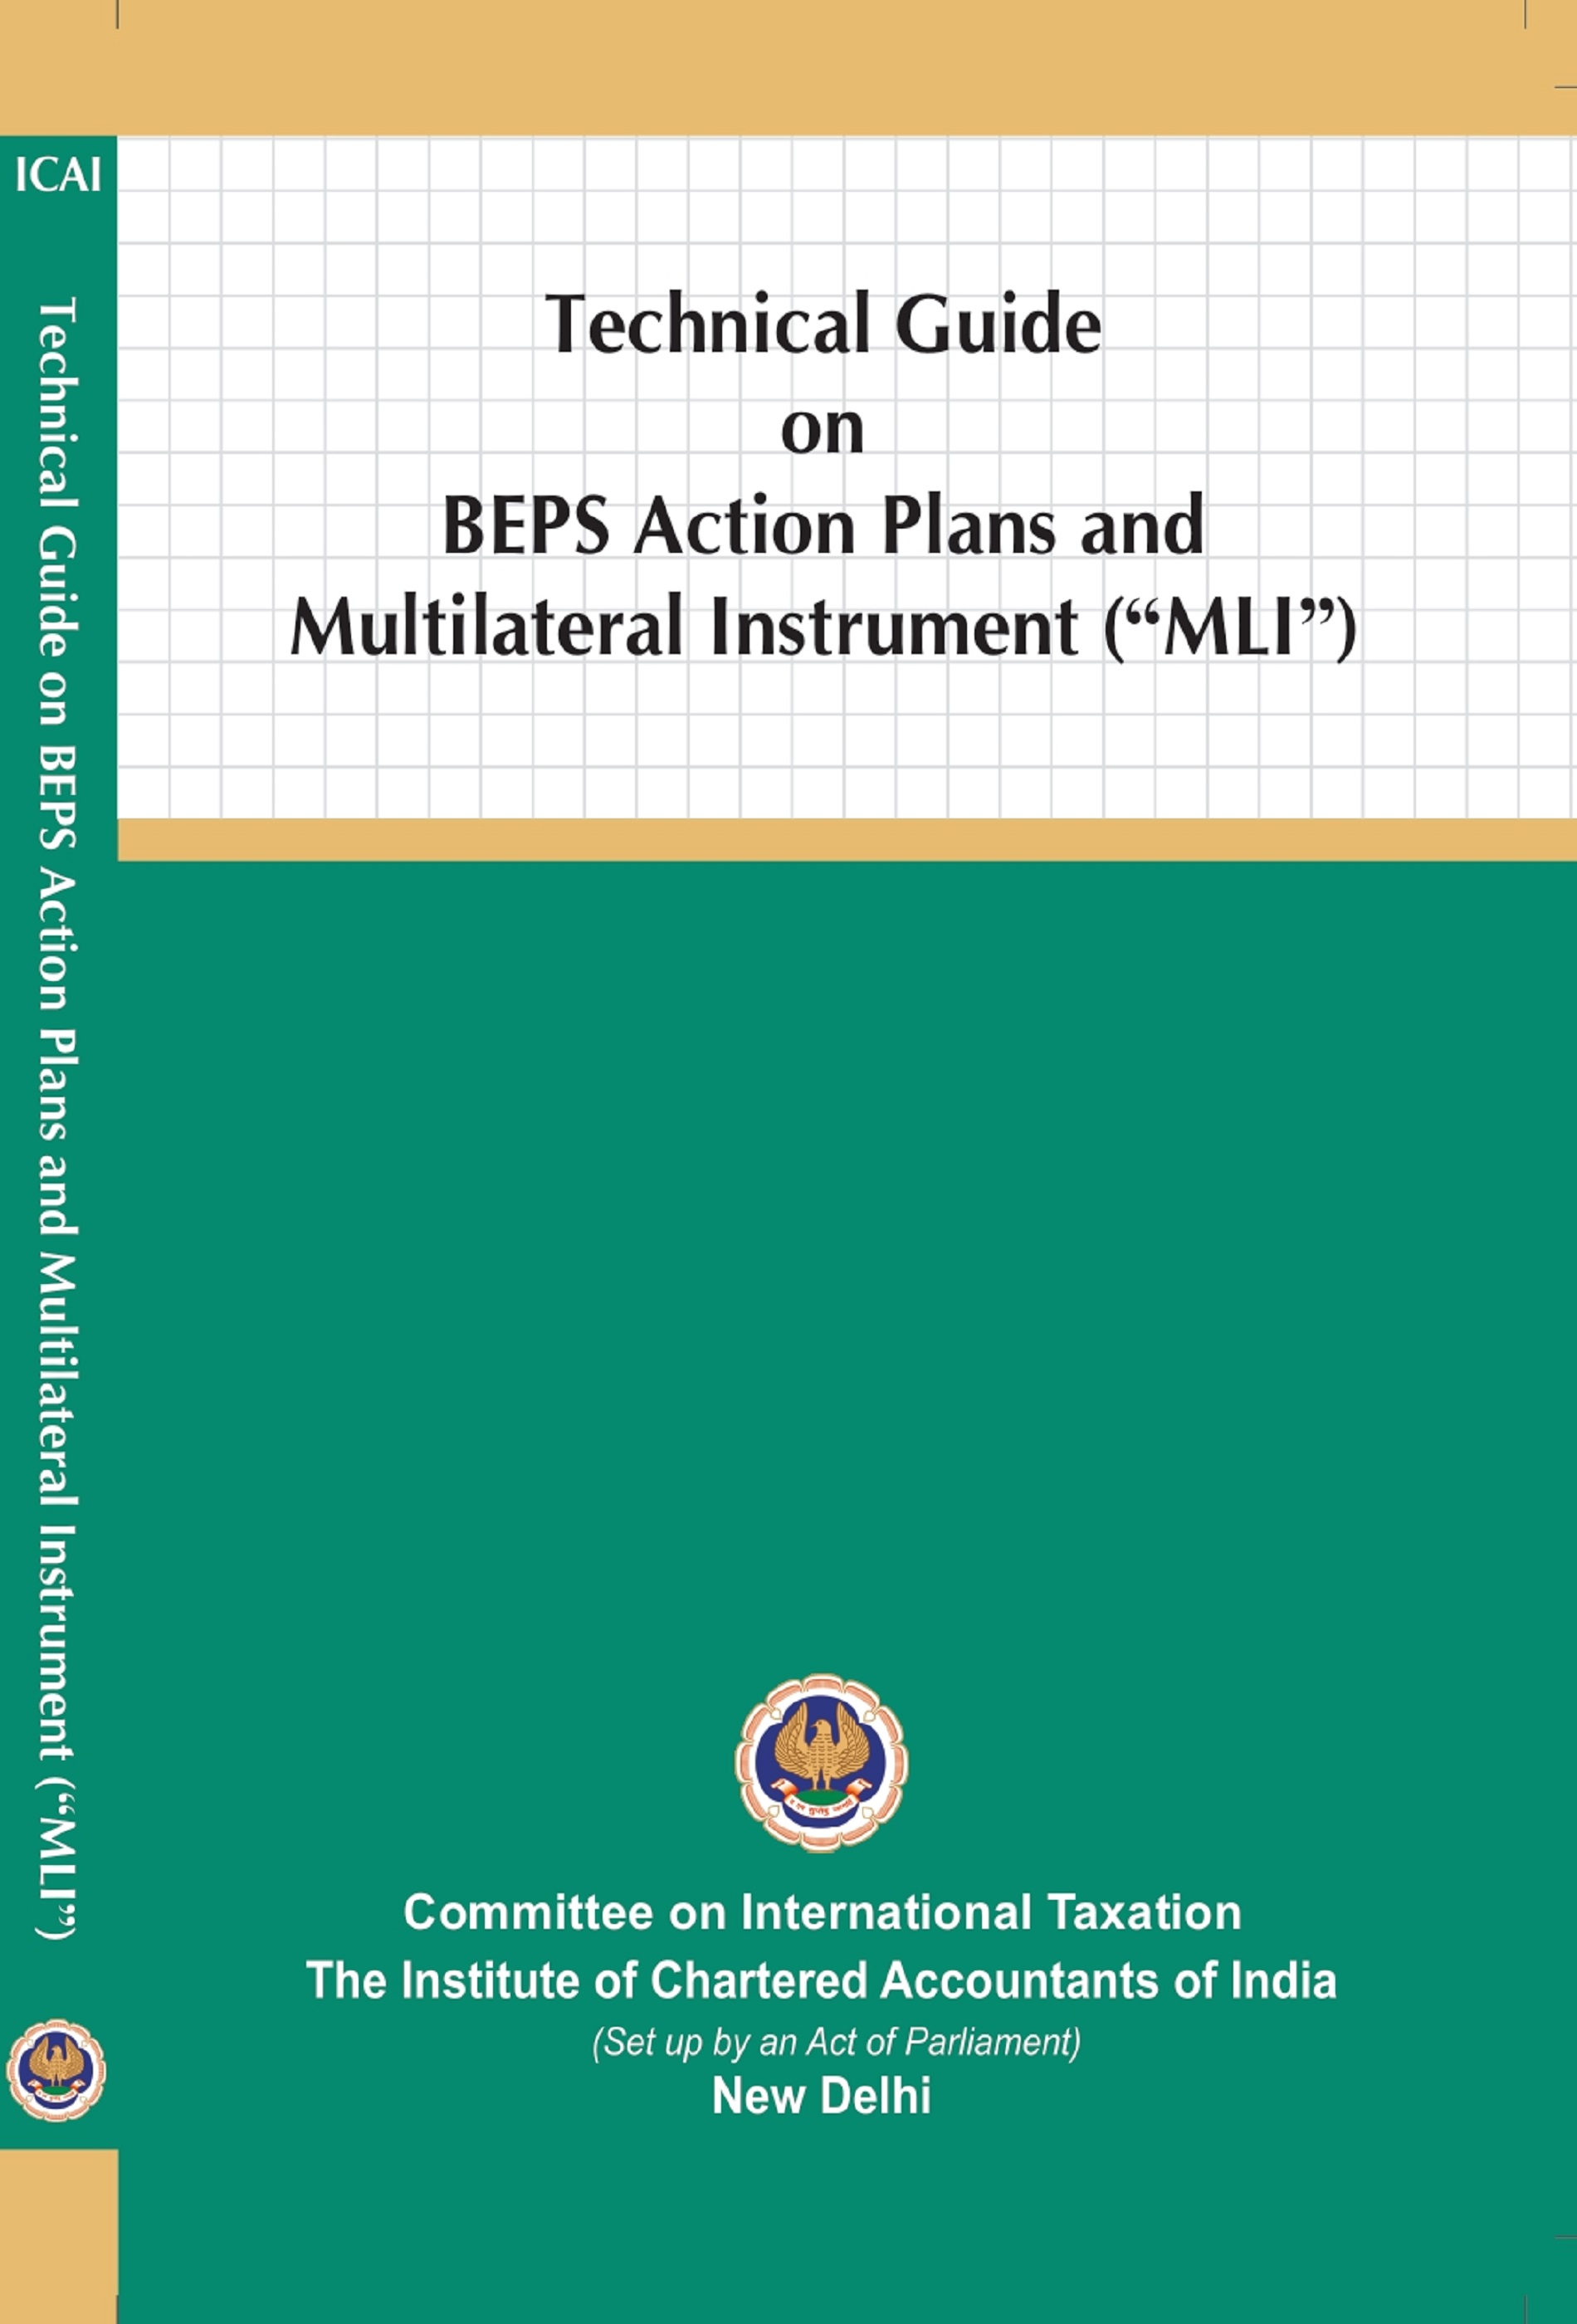 Technical Guide on BEPS Action Plans and Multilateral Instrument (MLI) September, 2020